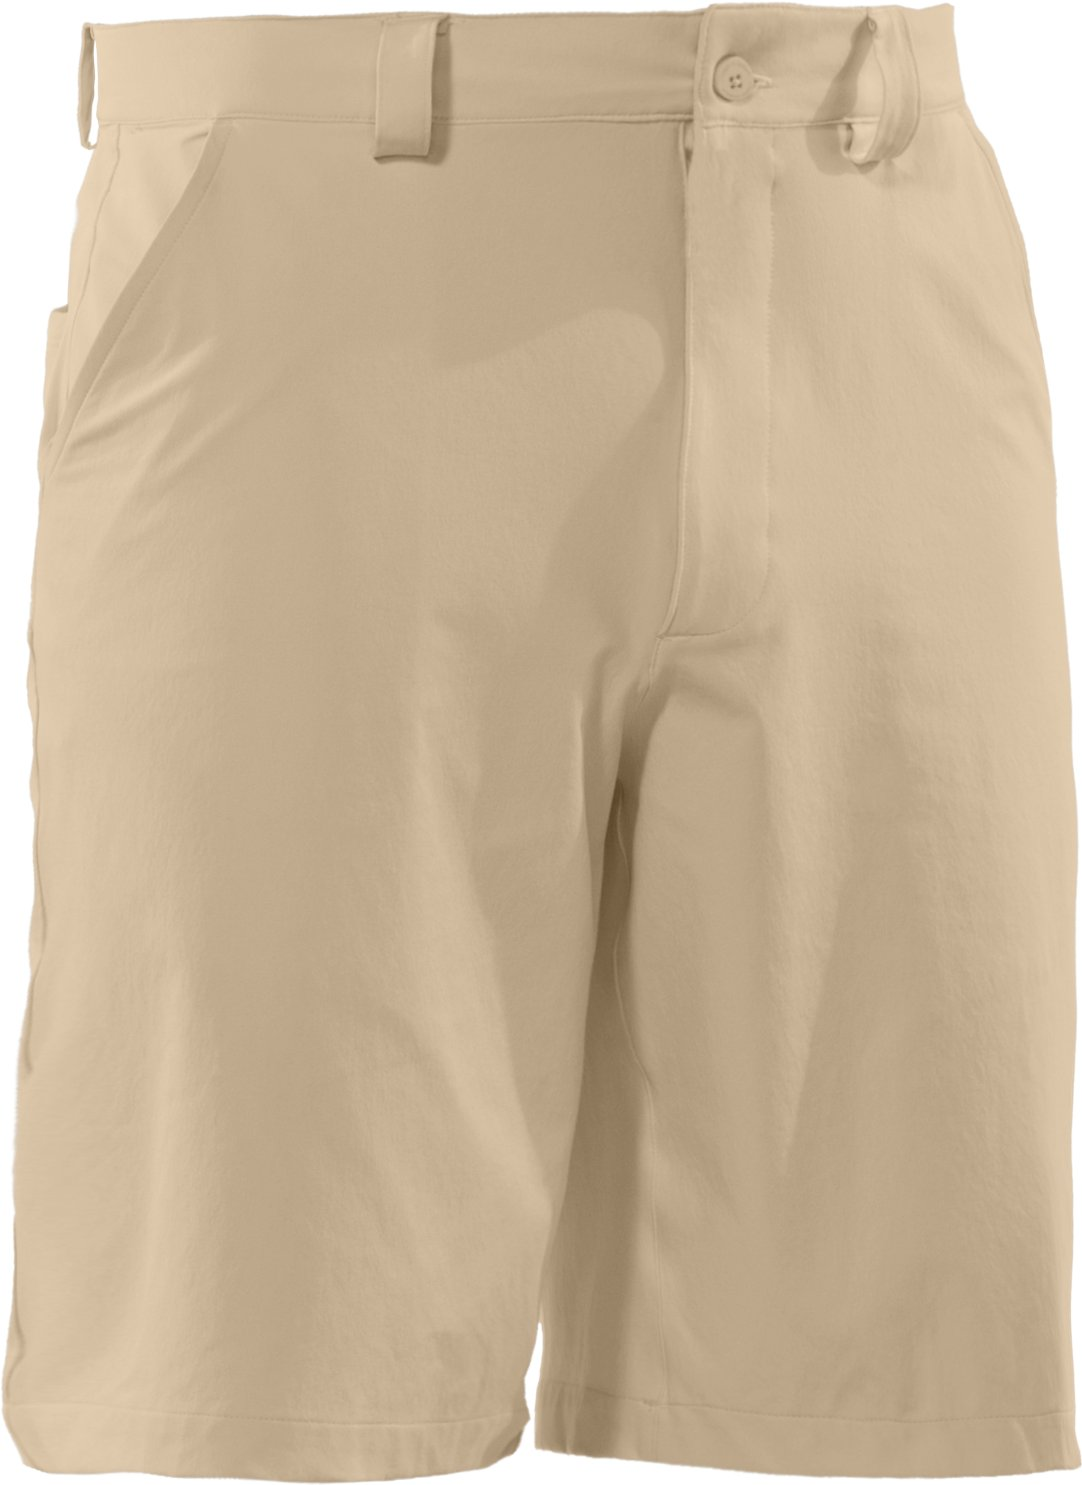 Men's Bent Grass Shorts, Light Khaki